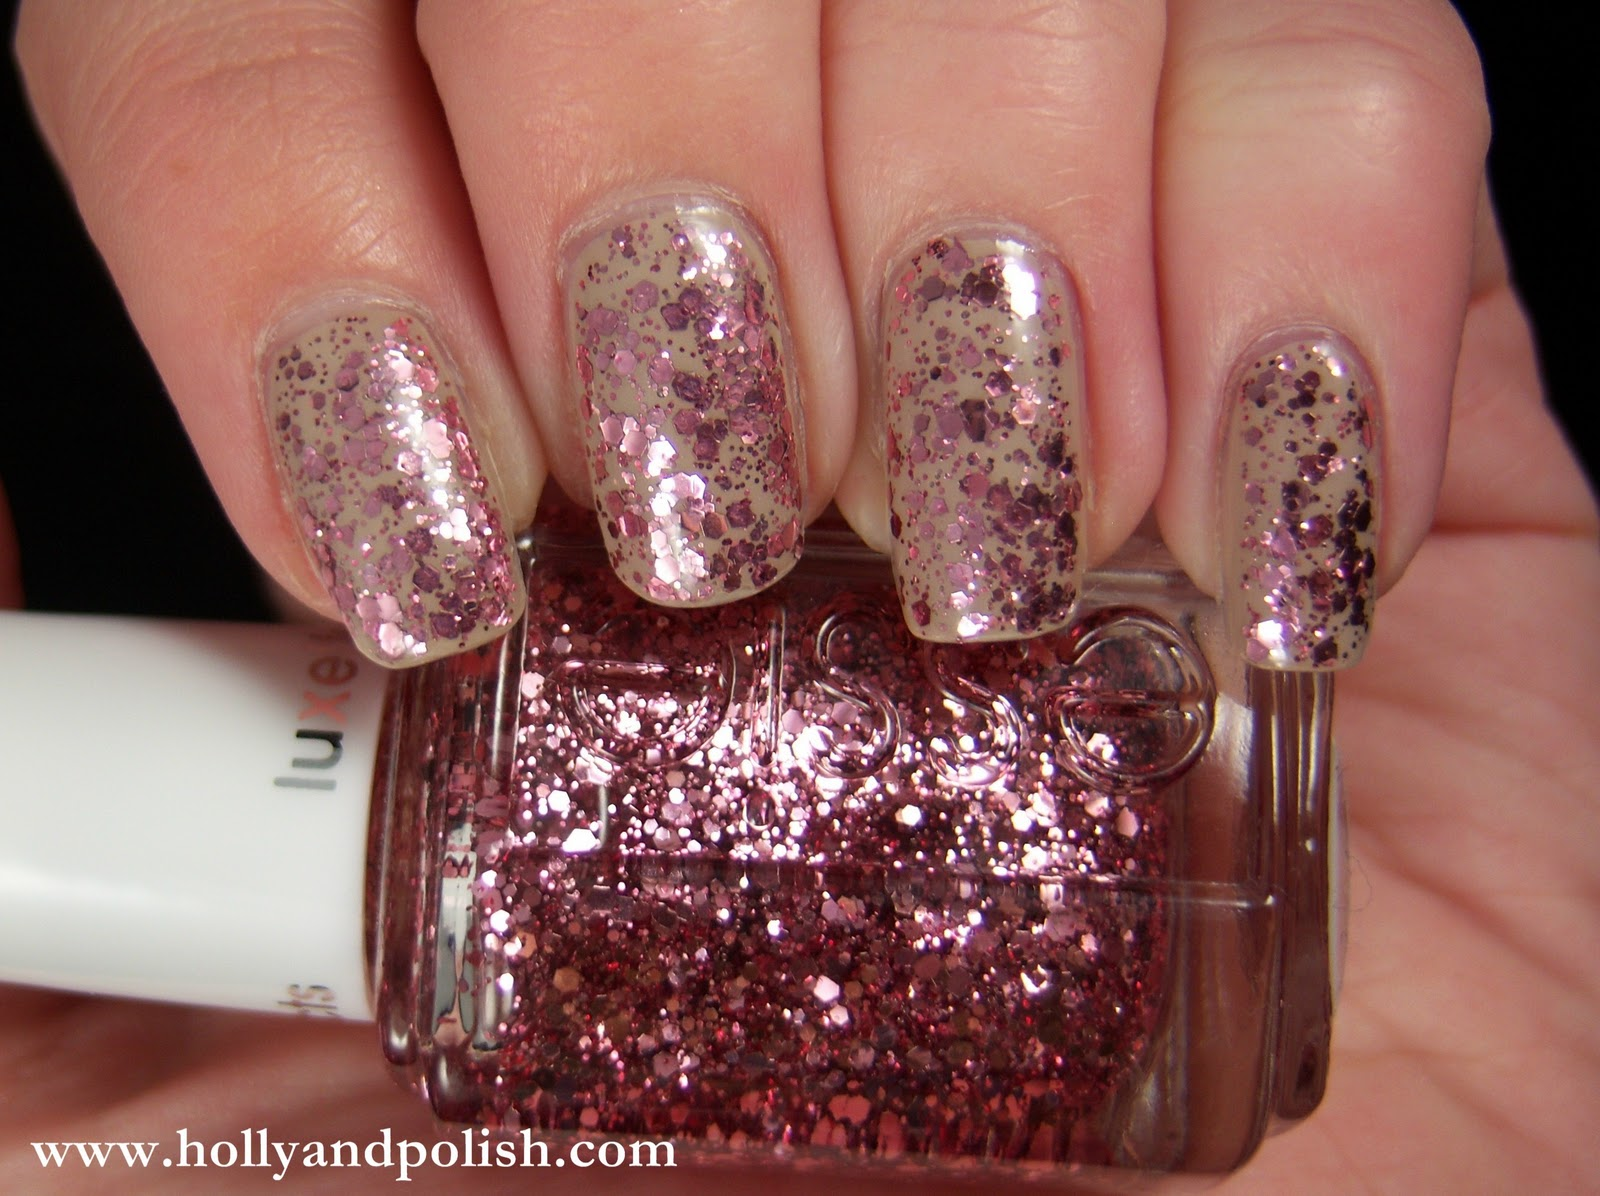 Holly and Polish: A Nail Polish and Beauty Blog: Essie A Cut Above